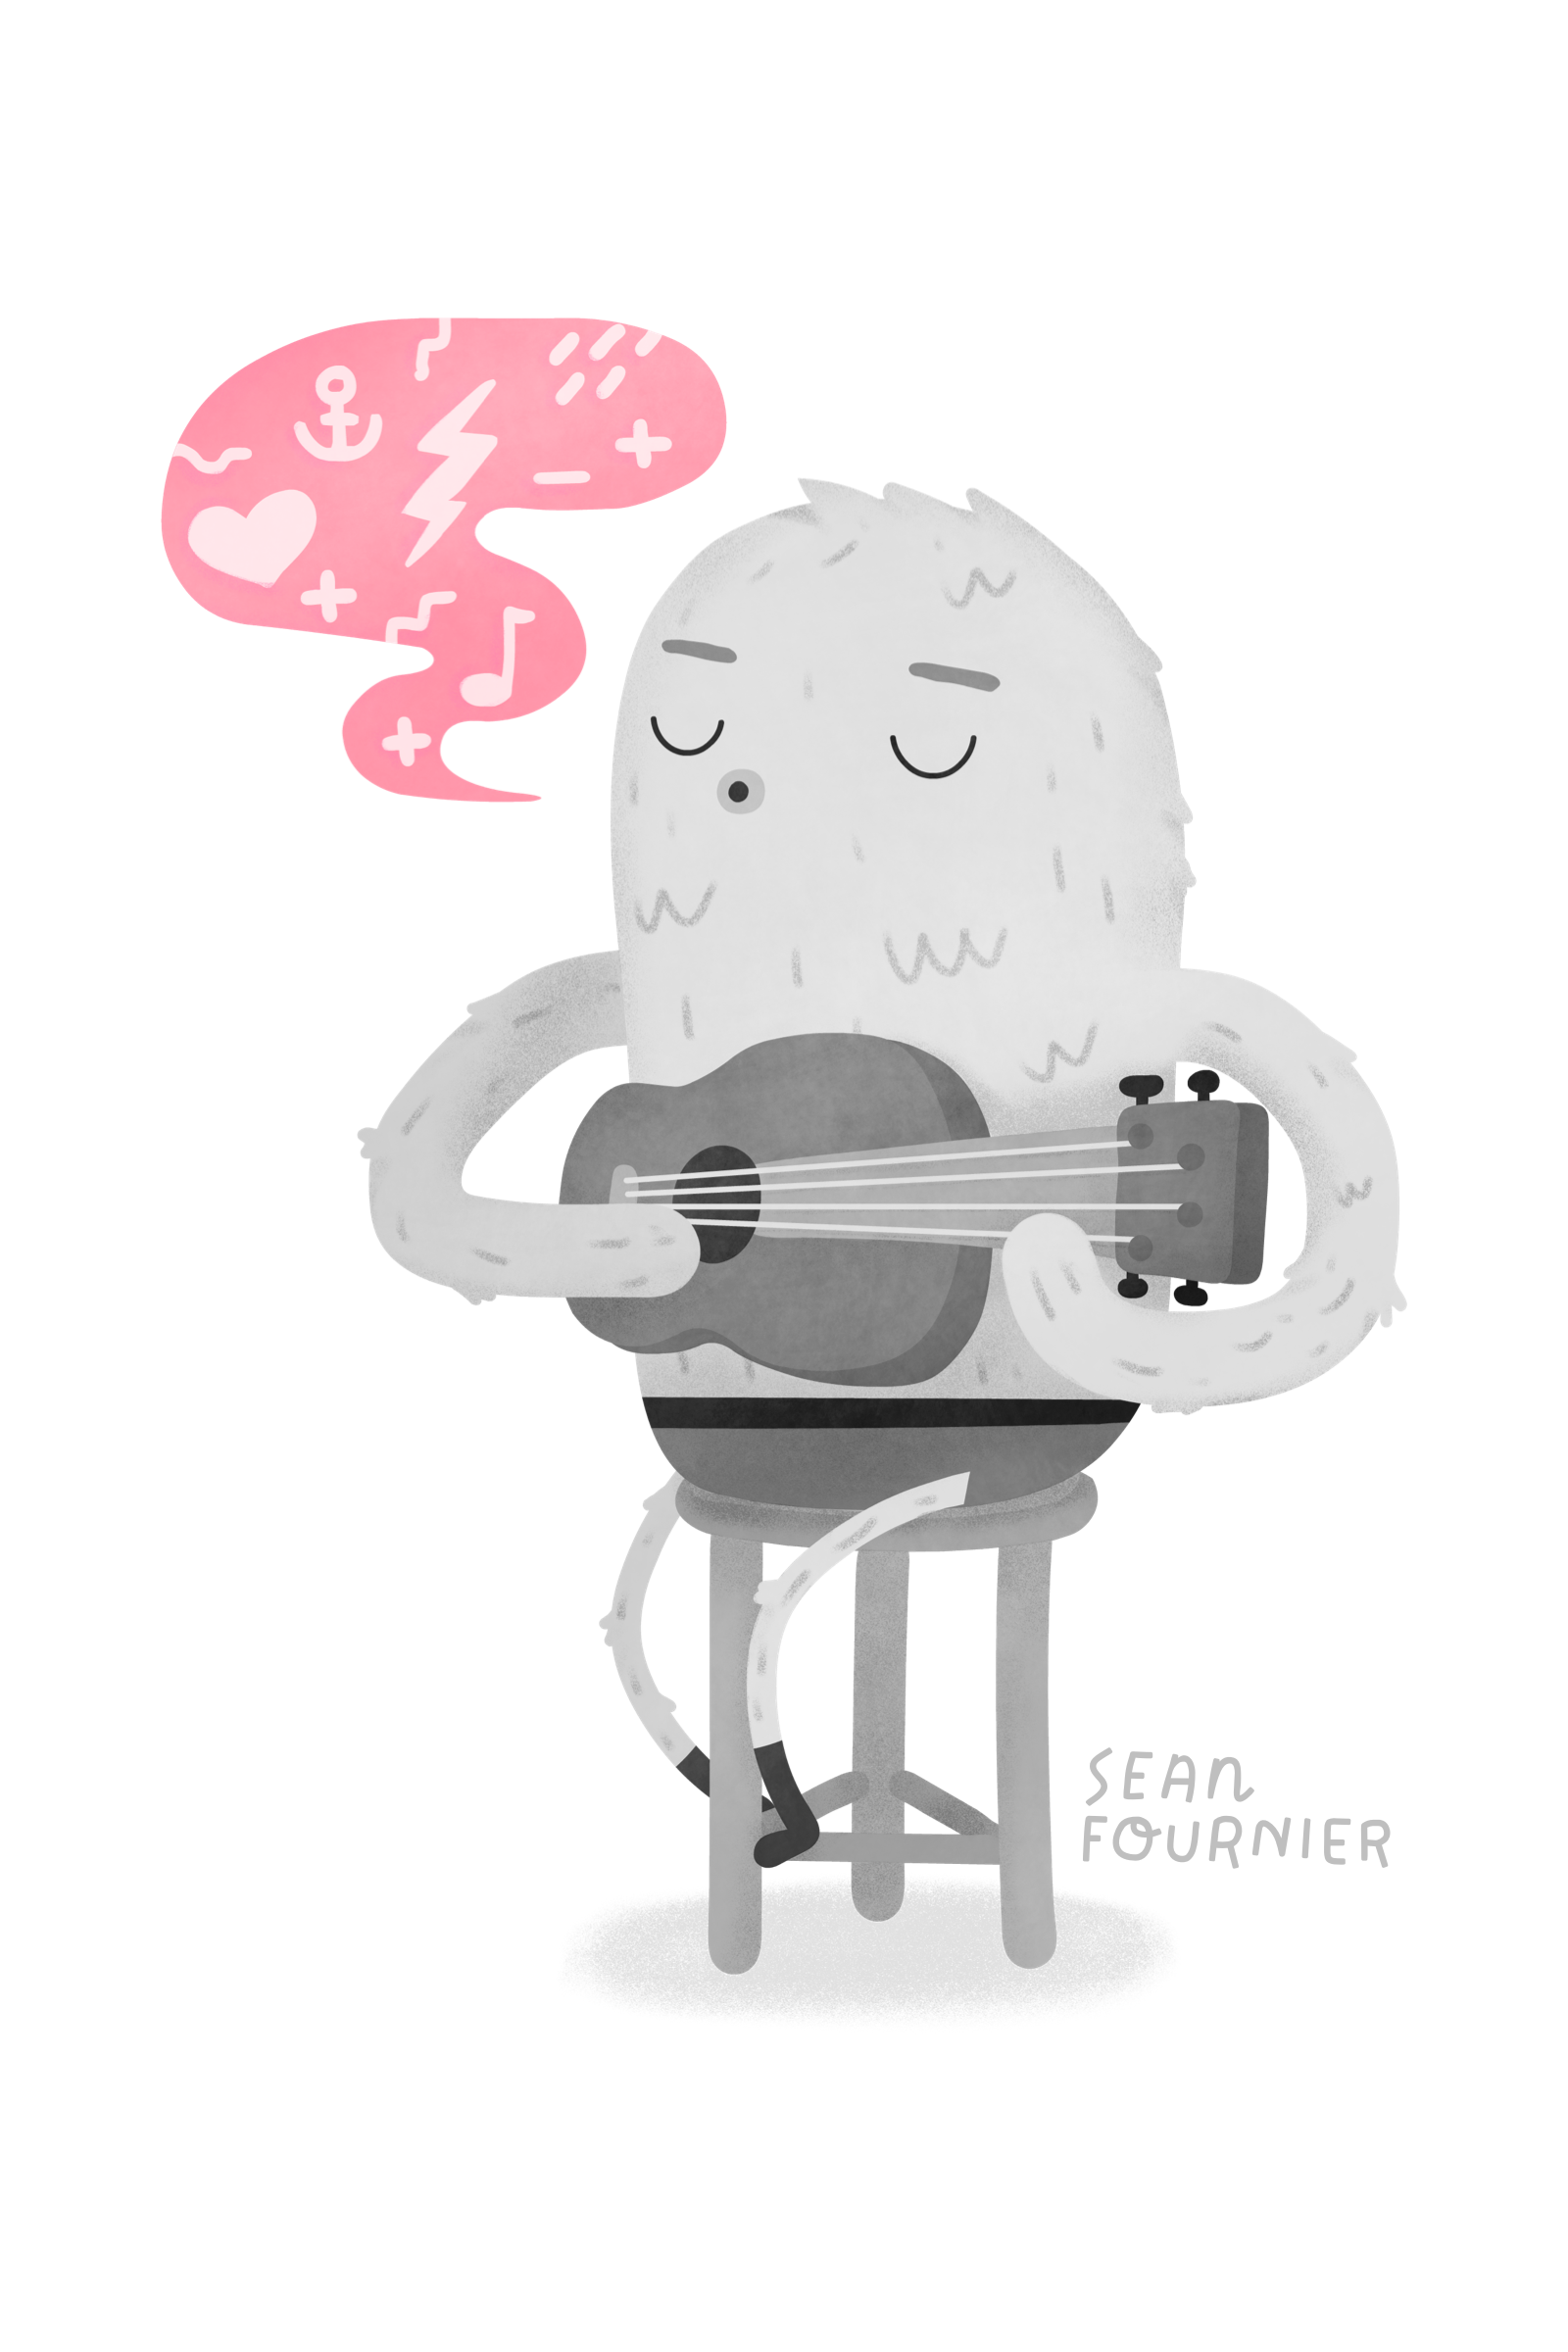 sean-fournier-music.png